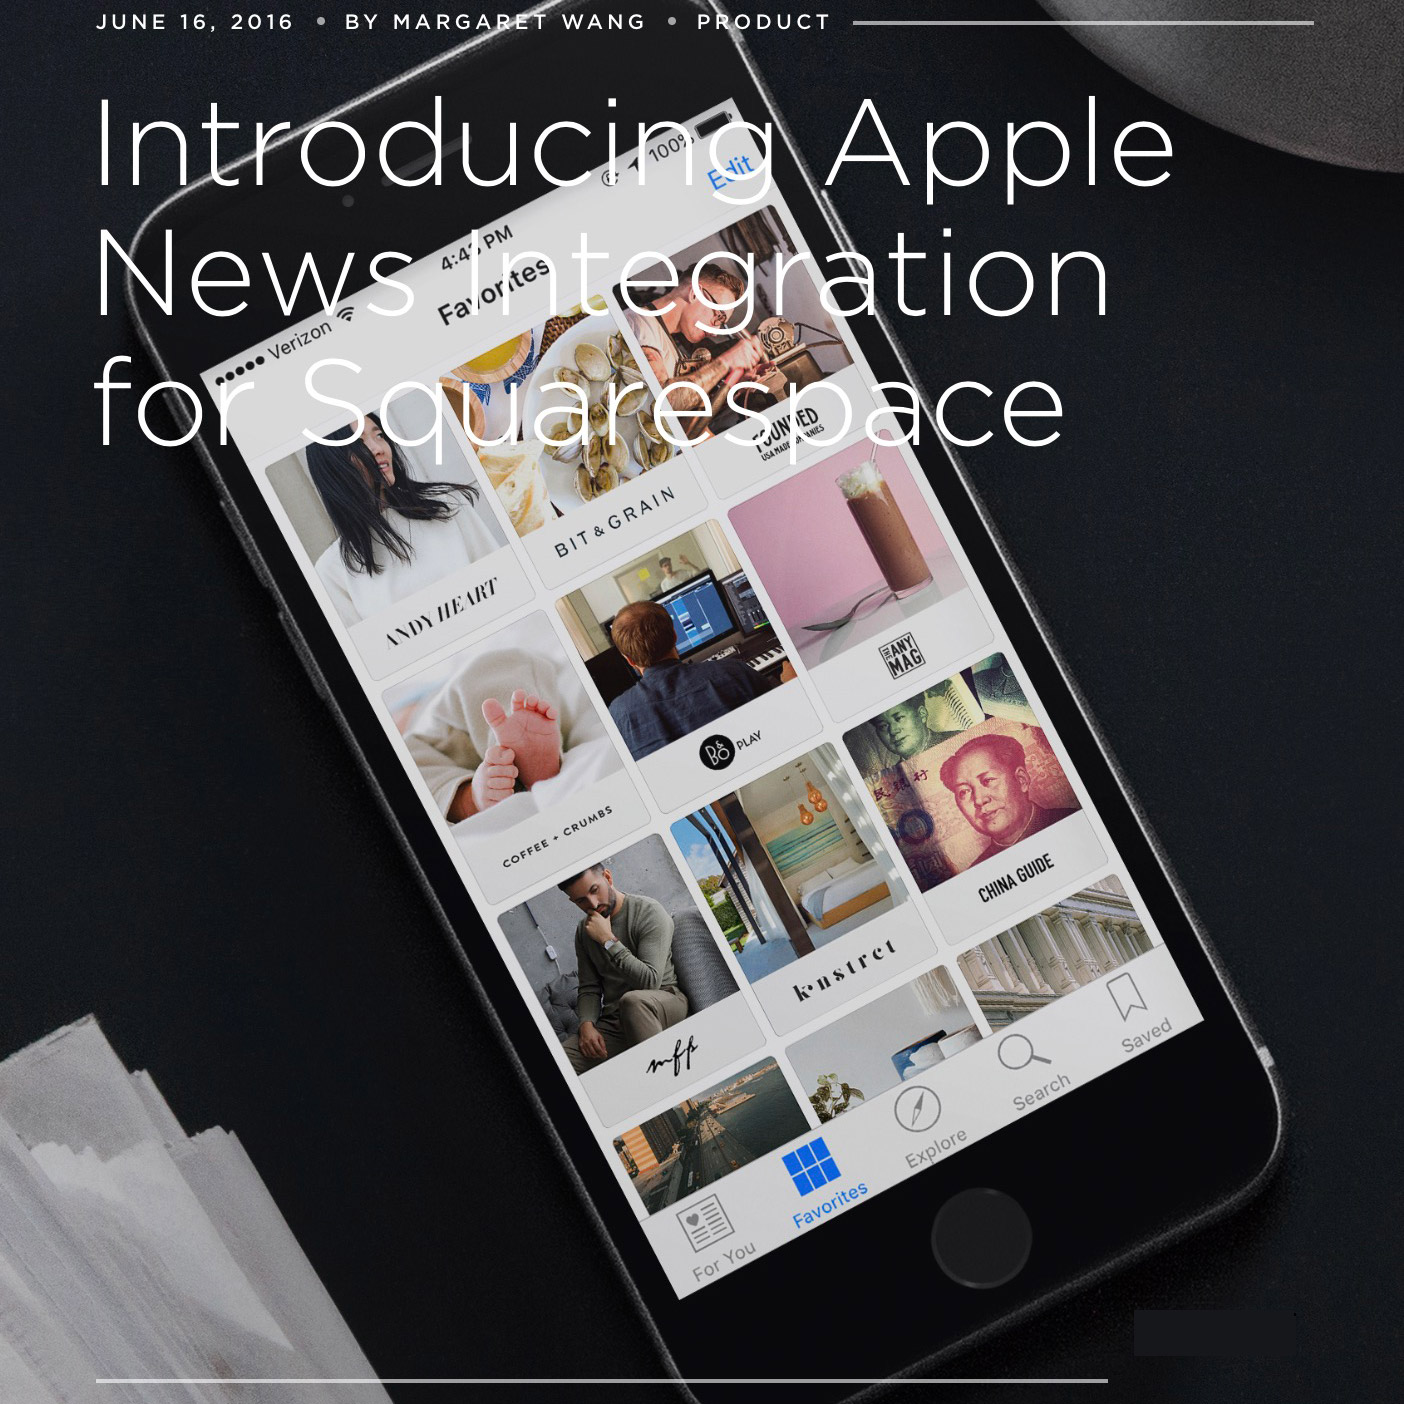 Squarespace Supports Apple News Format for Customers